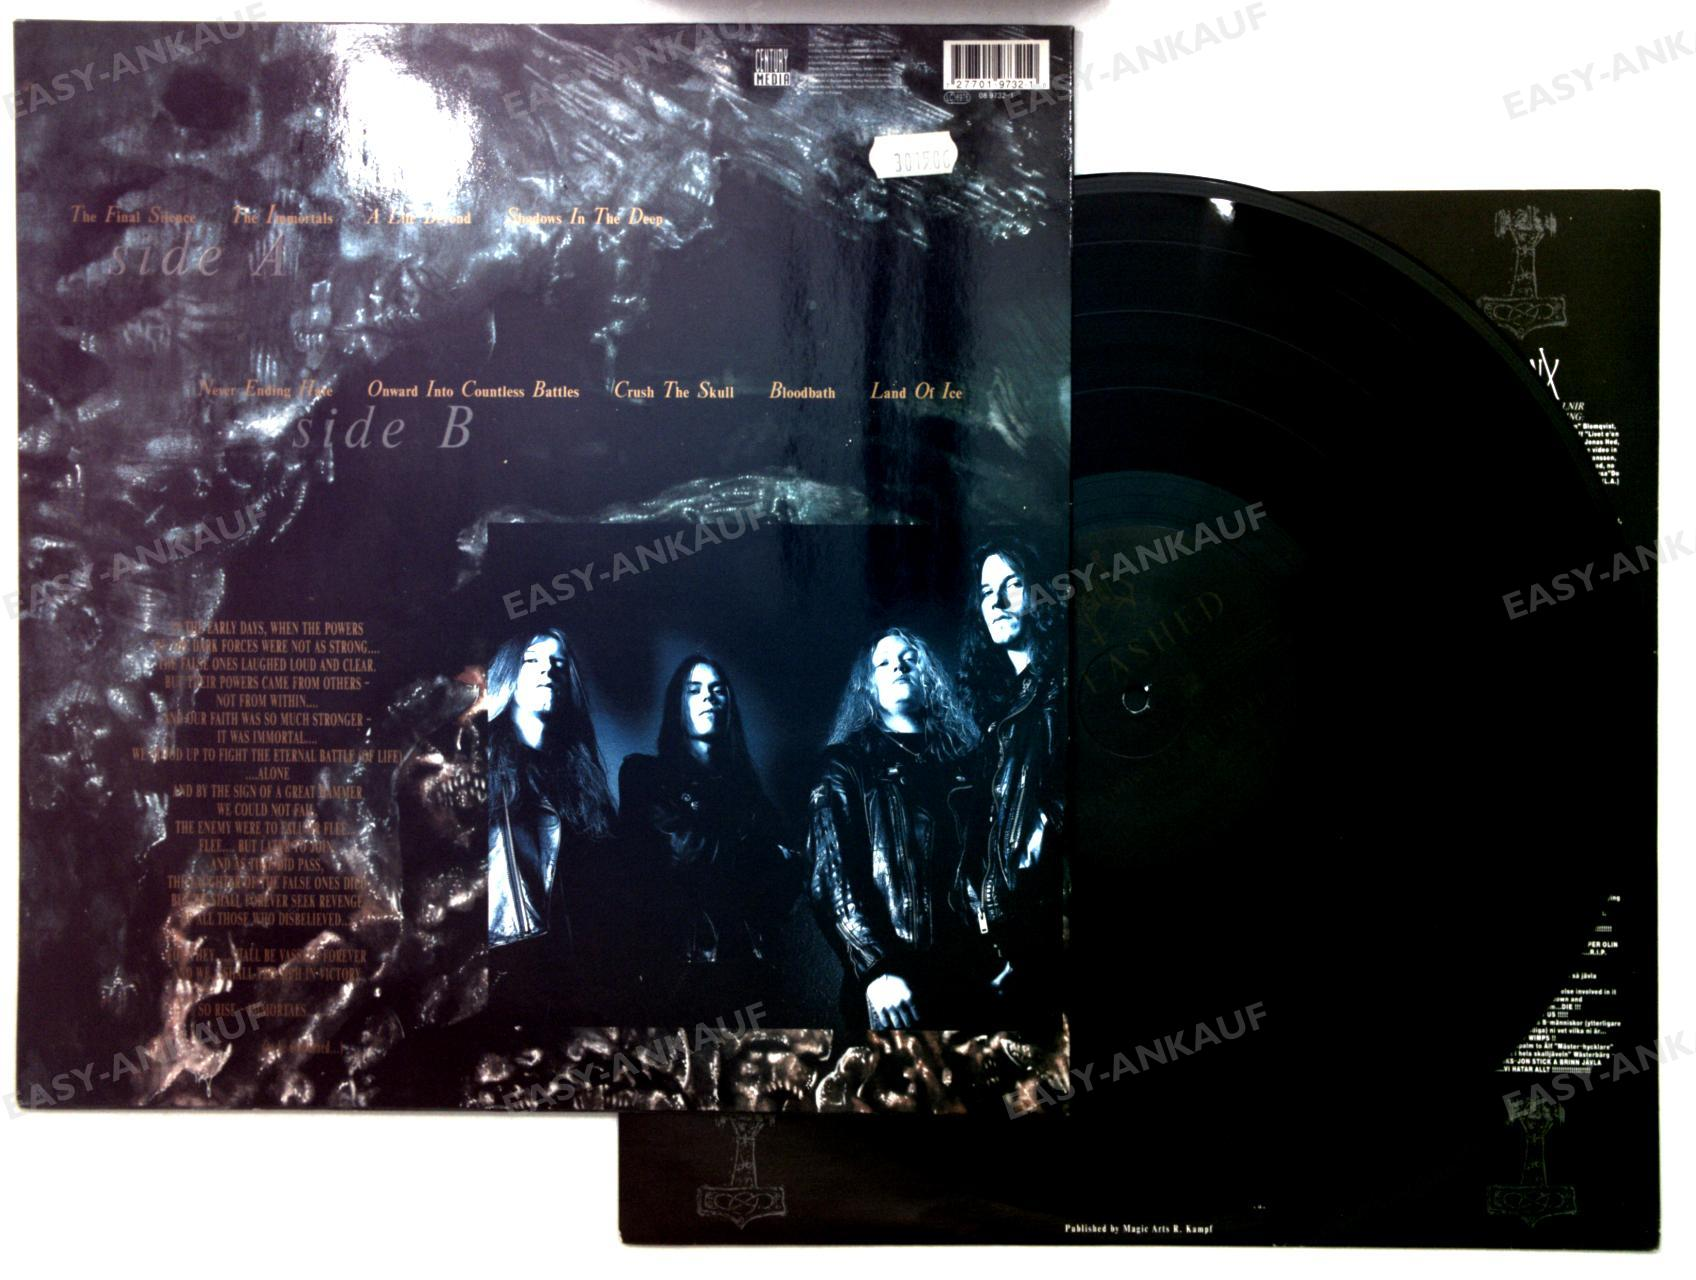 Unleashed-Shadows-In-The-Deep-Europe-LP-1992-Innerbag-039 Indexbild 2